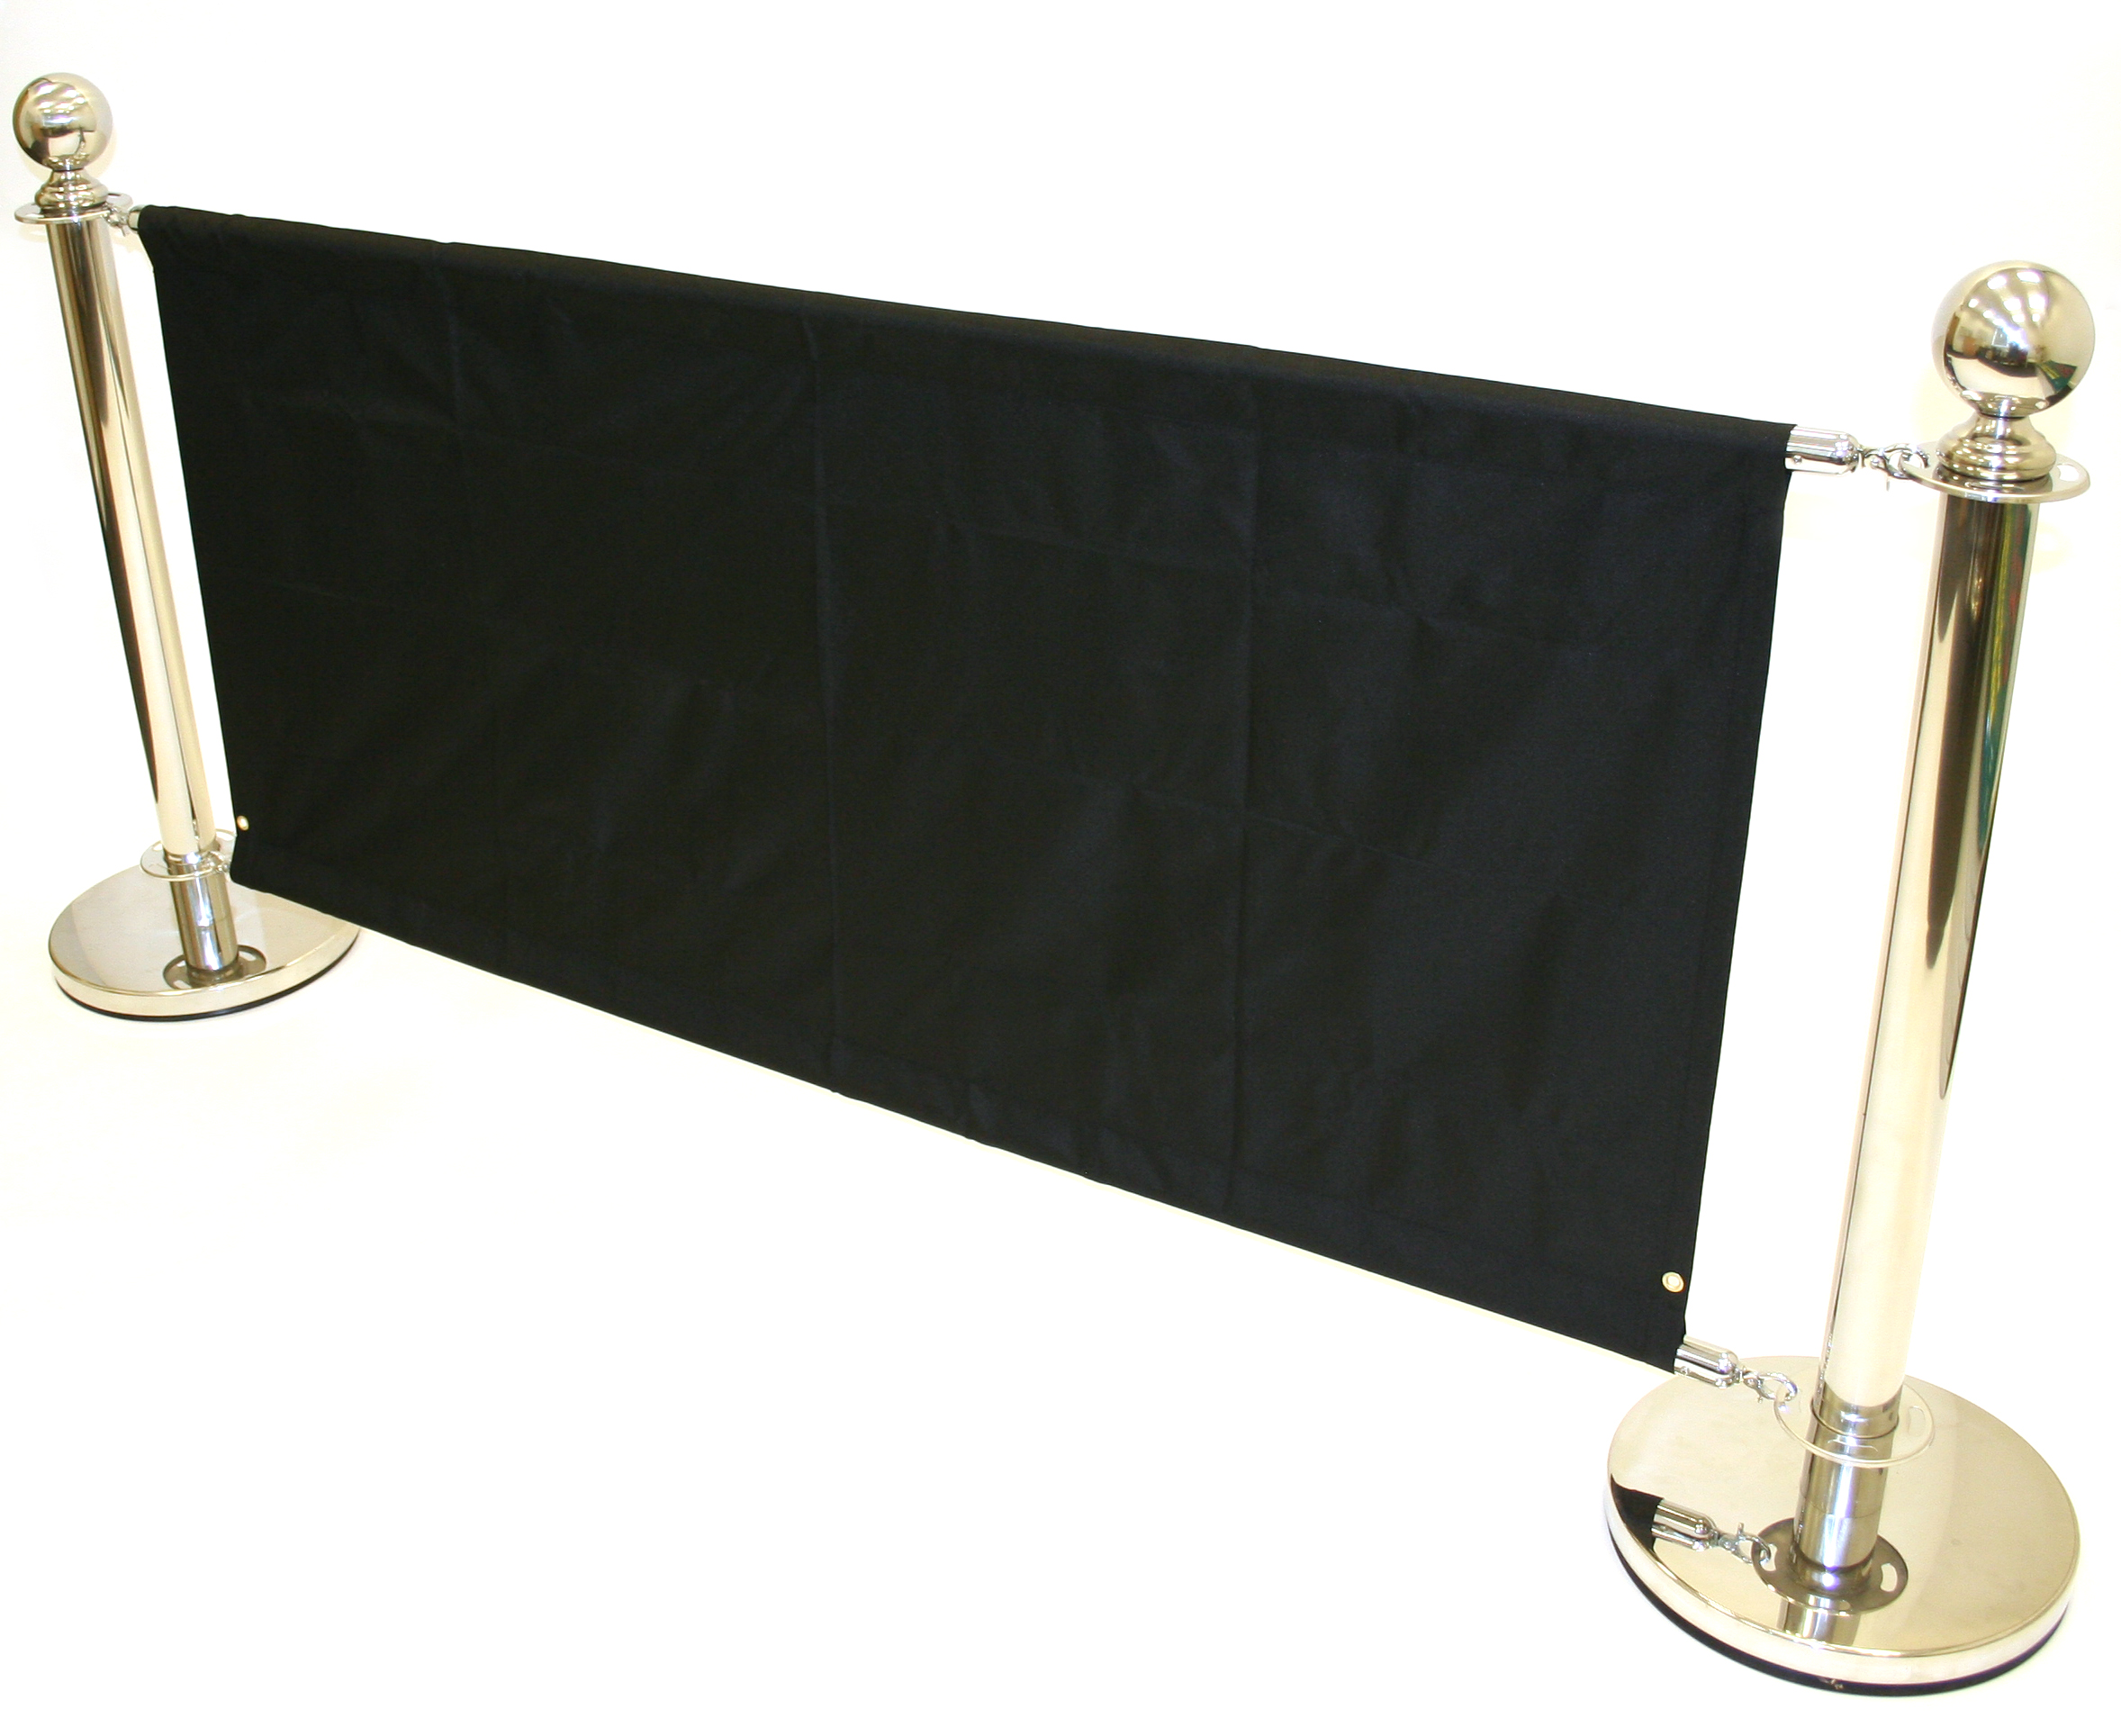 Stainless Steel Cafe Barrier Sets - BE Furniture Sales